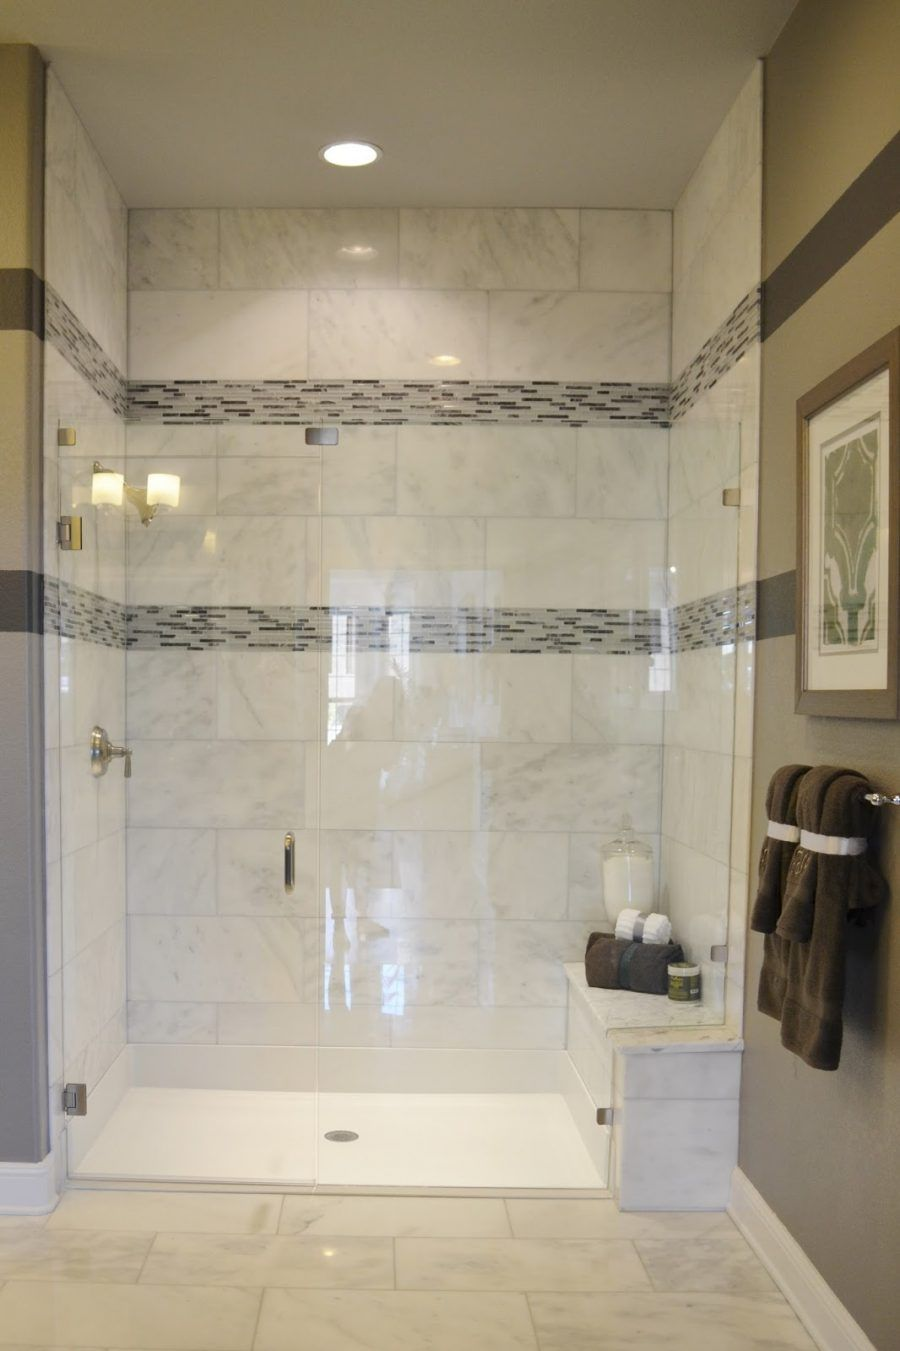 Excellent Bathtub Shower Enclosure Ideas 150 Tile Tub Surround Gray Bathtub Enclosure Tile Ideas Home Depot Bathroom Tile Tub Surround Bathtub Tile